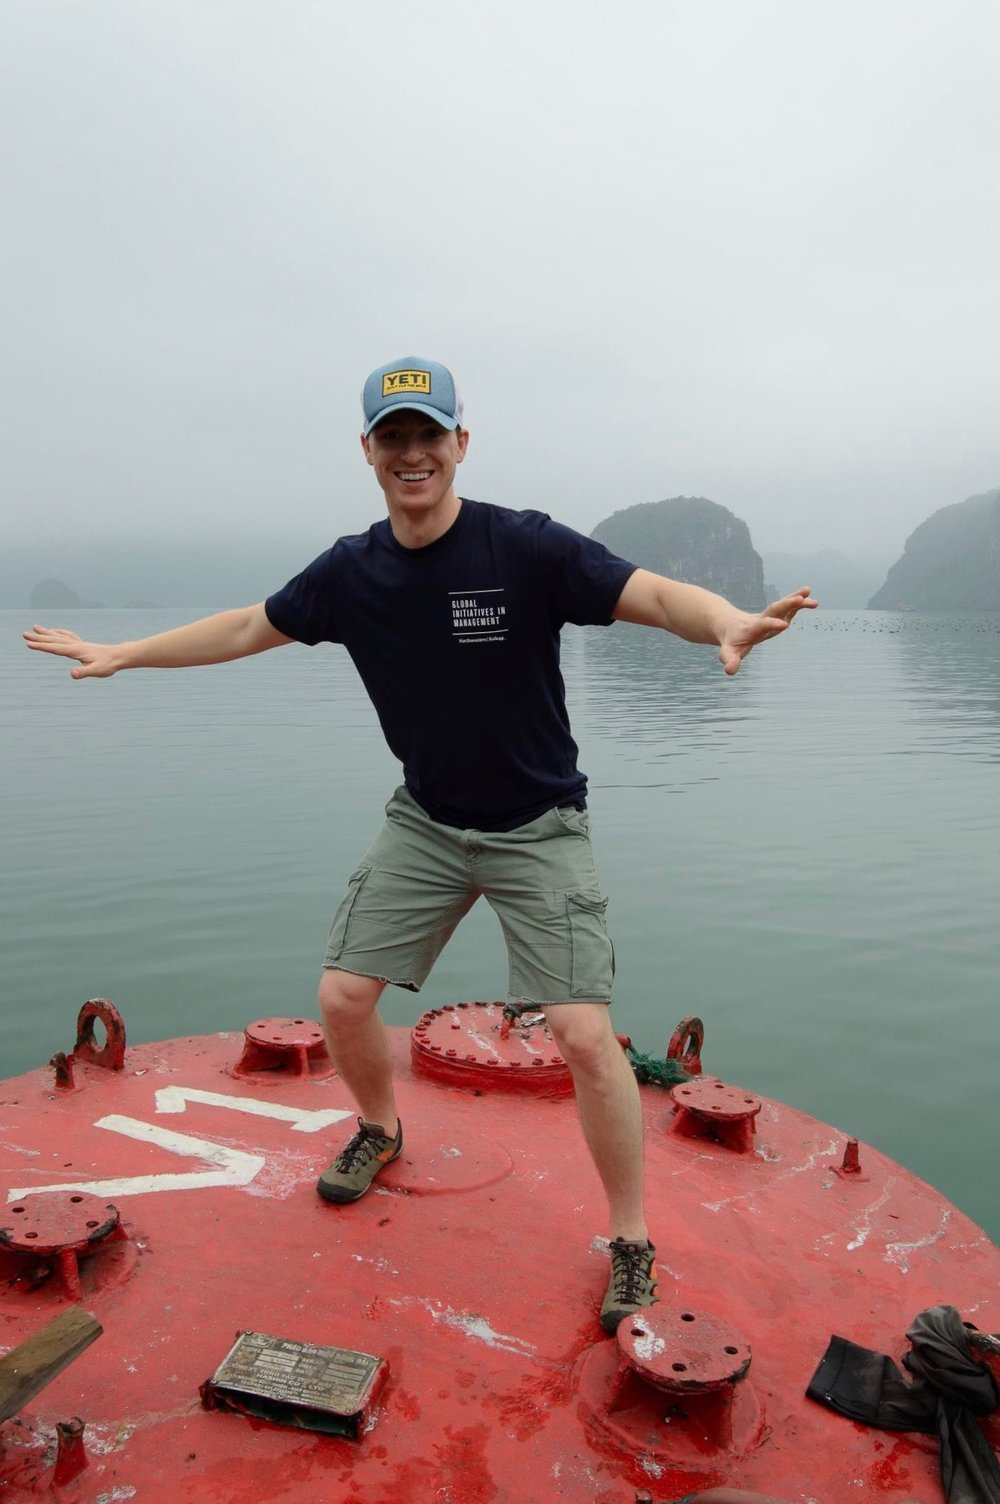 Decided to jump on a large buoy while on a boat cruise in Ha Long Bay.  Ha Long Bay, Vietnam - 2017